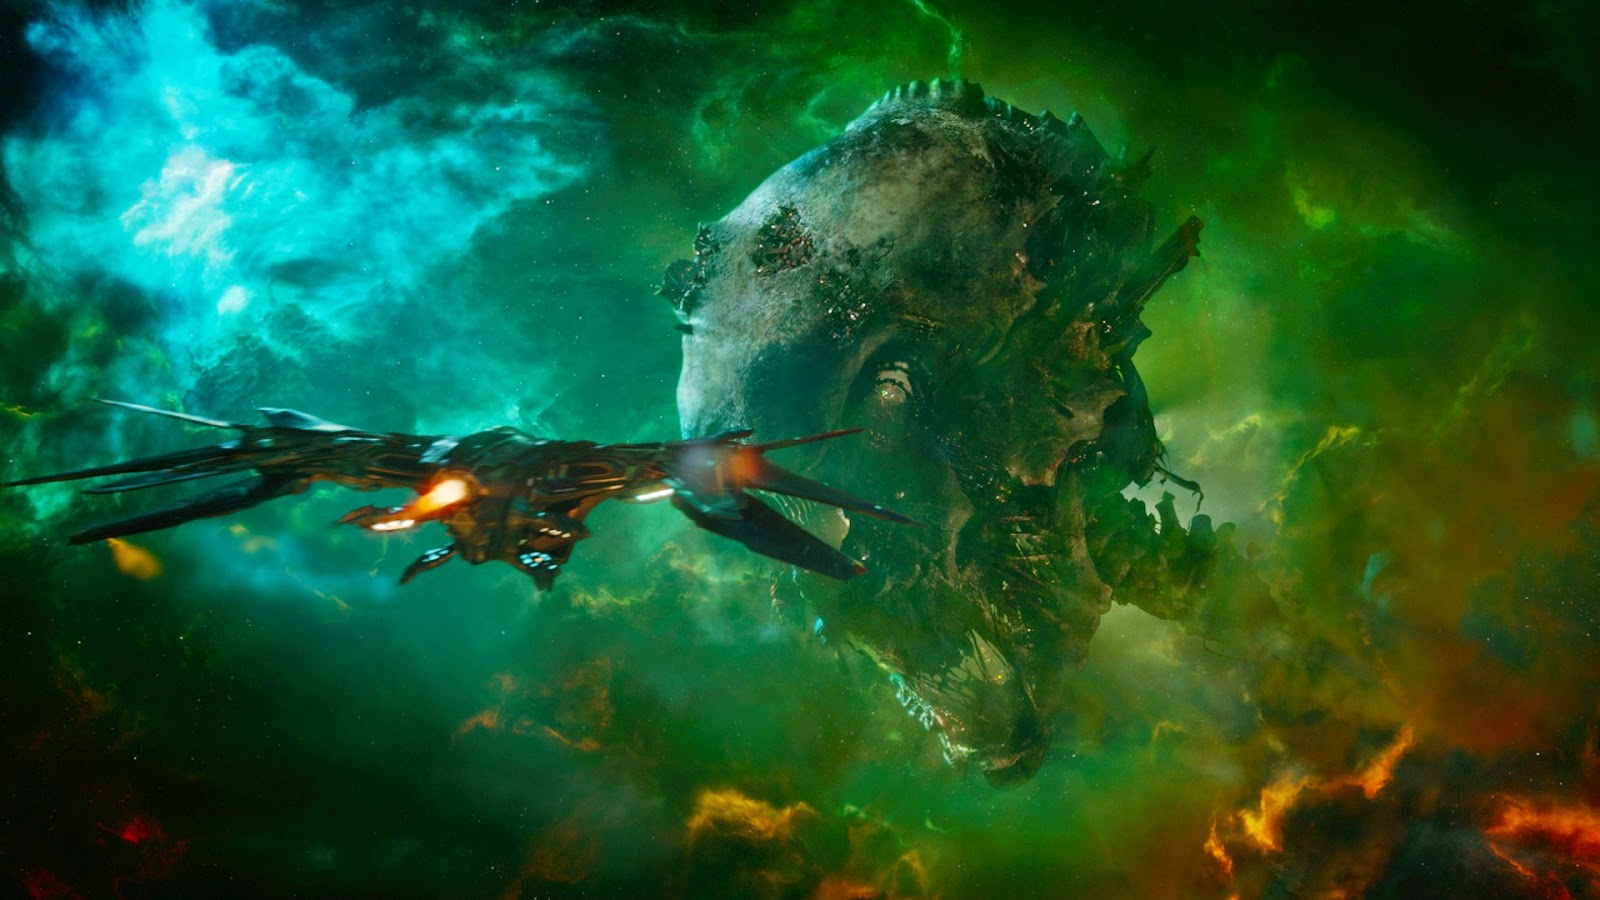 guardians of the galaxy movie wallpapers - 132 Guardians Of The Galaxy HD Wallpapers Backgrounds